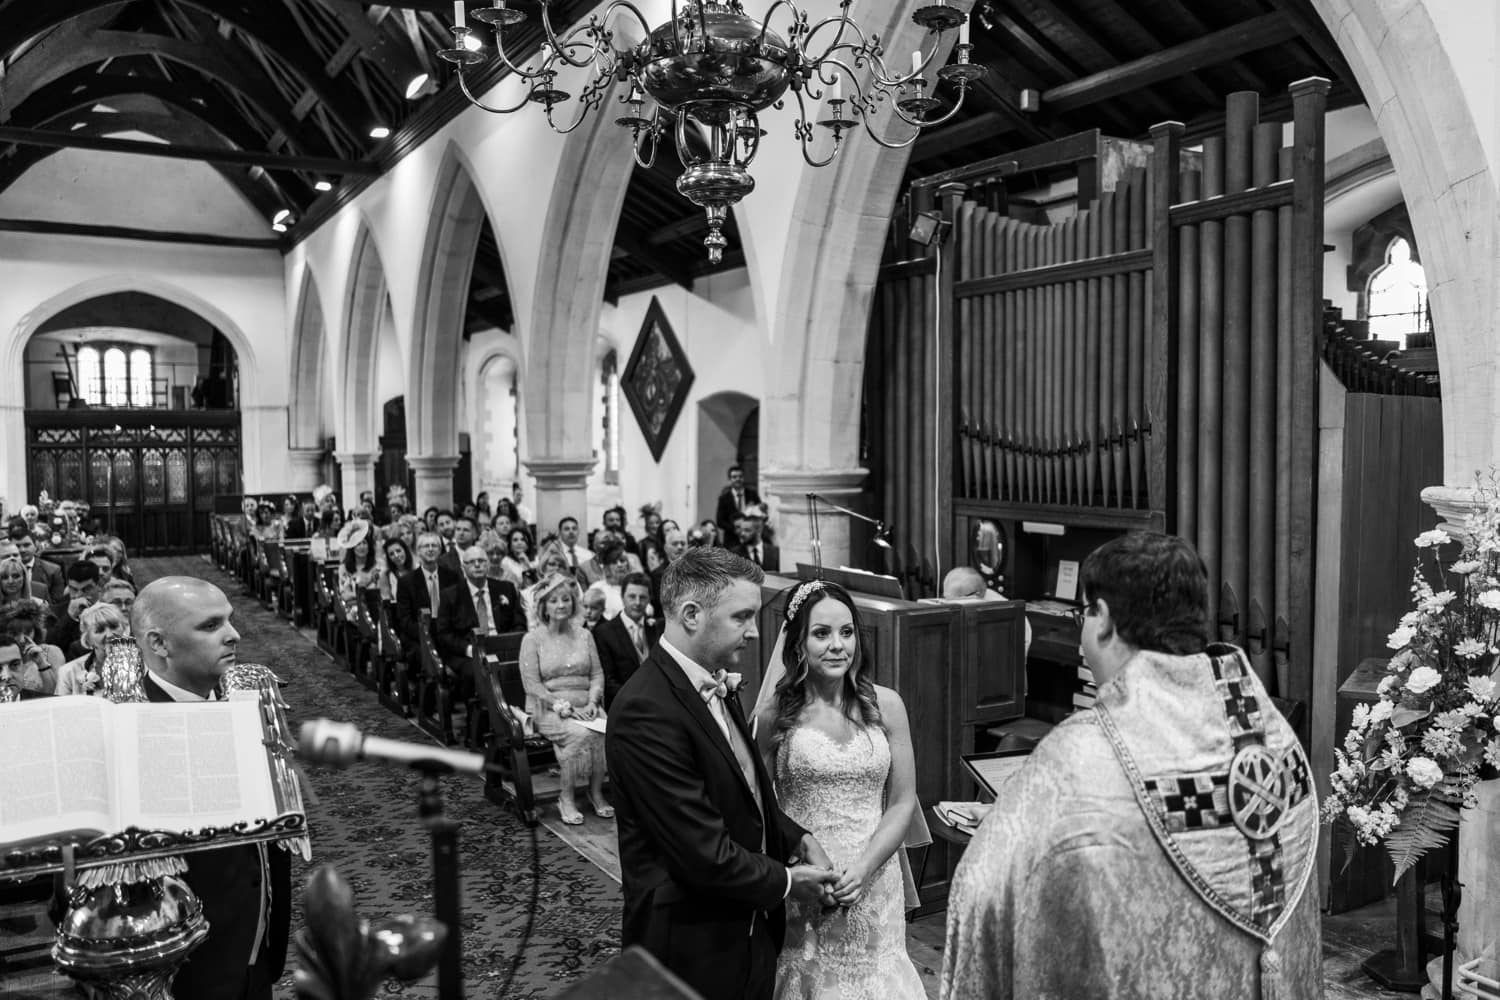 Wedding at Llantrisant Church in South Wales